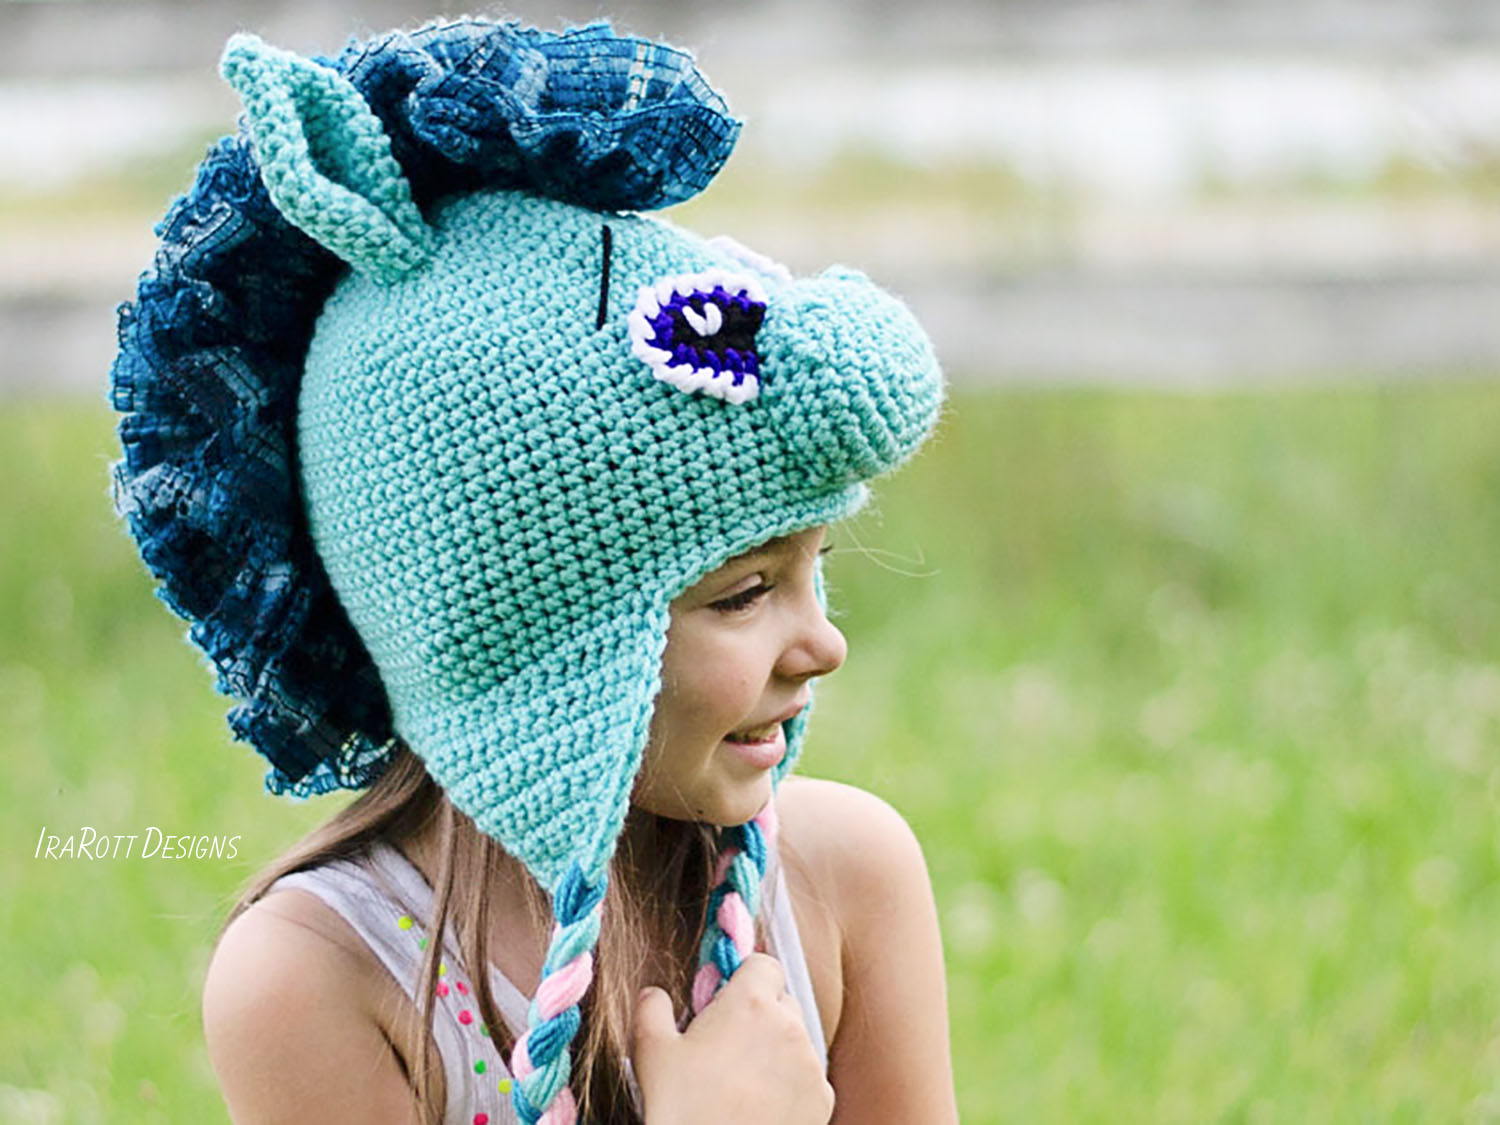 Crochet Pattern PDF for making a Circus Pony or Horse or Unicorn Animal Hat with Ruffled Mane